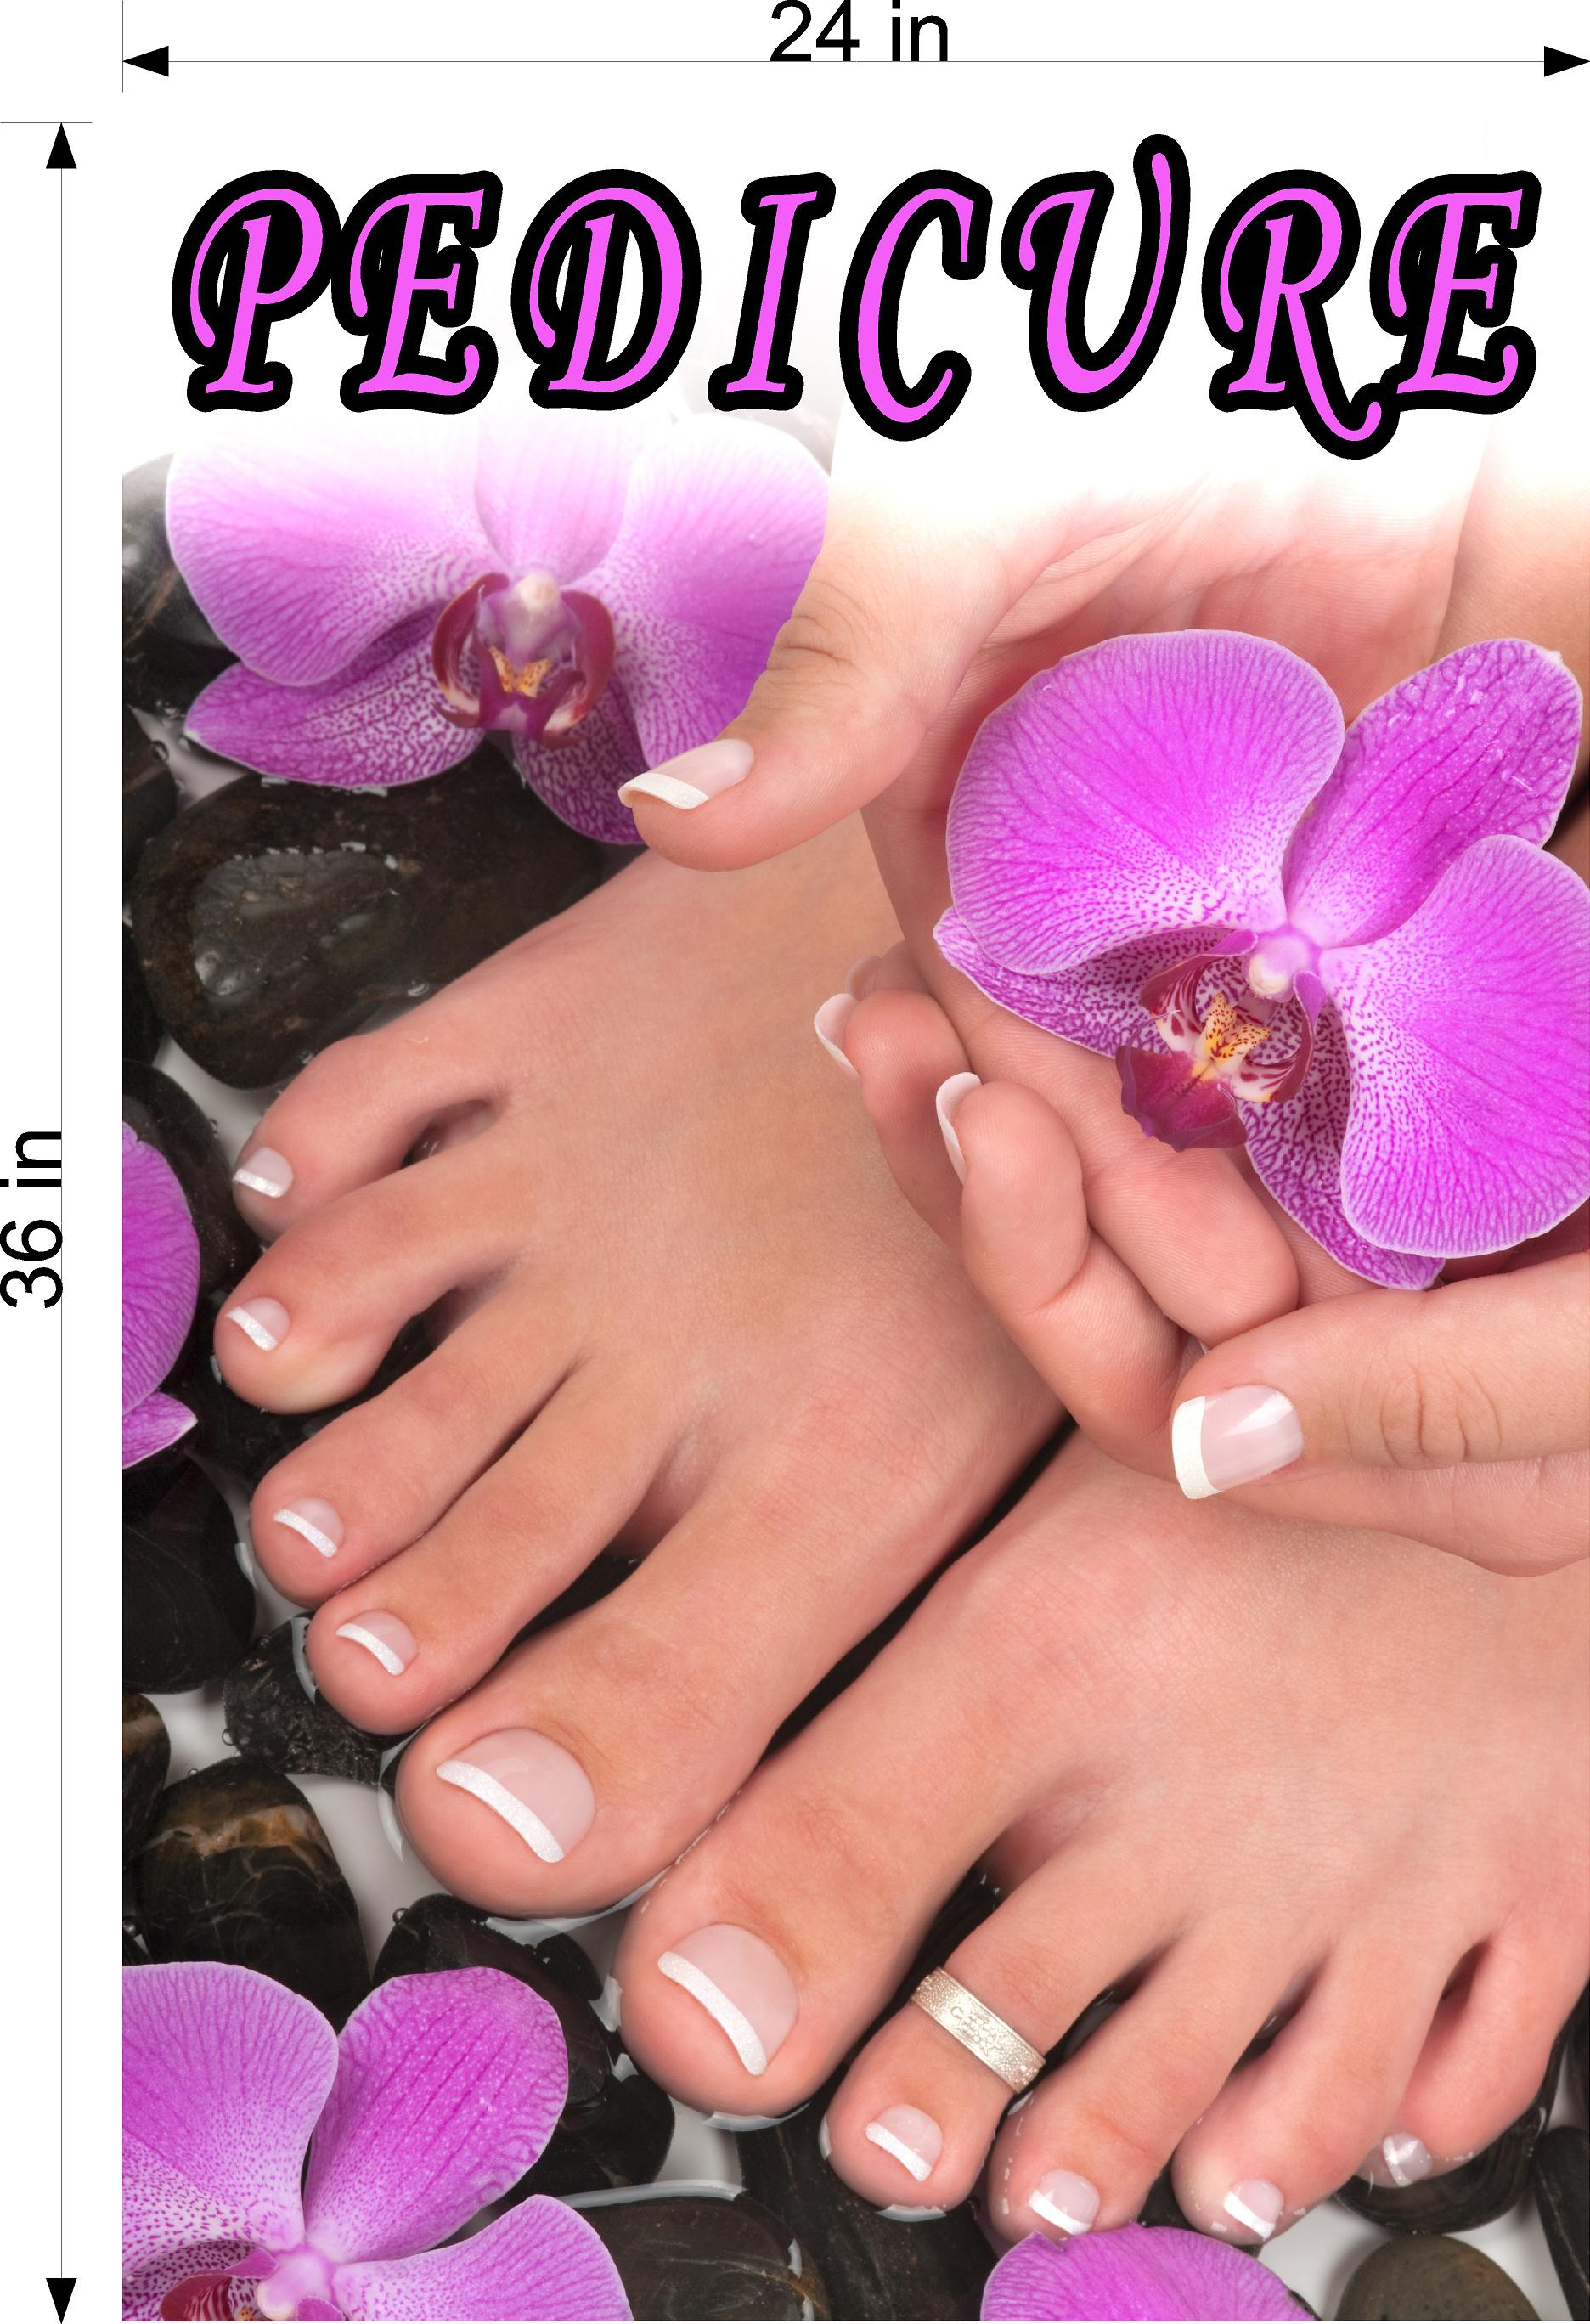 Pedicure 08 Wallpaper Poster Decal with Adhesive Backing Wall Sticker Decor Indoors Interior Sign Vertical